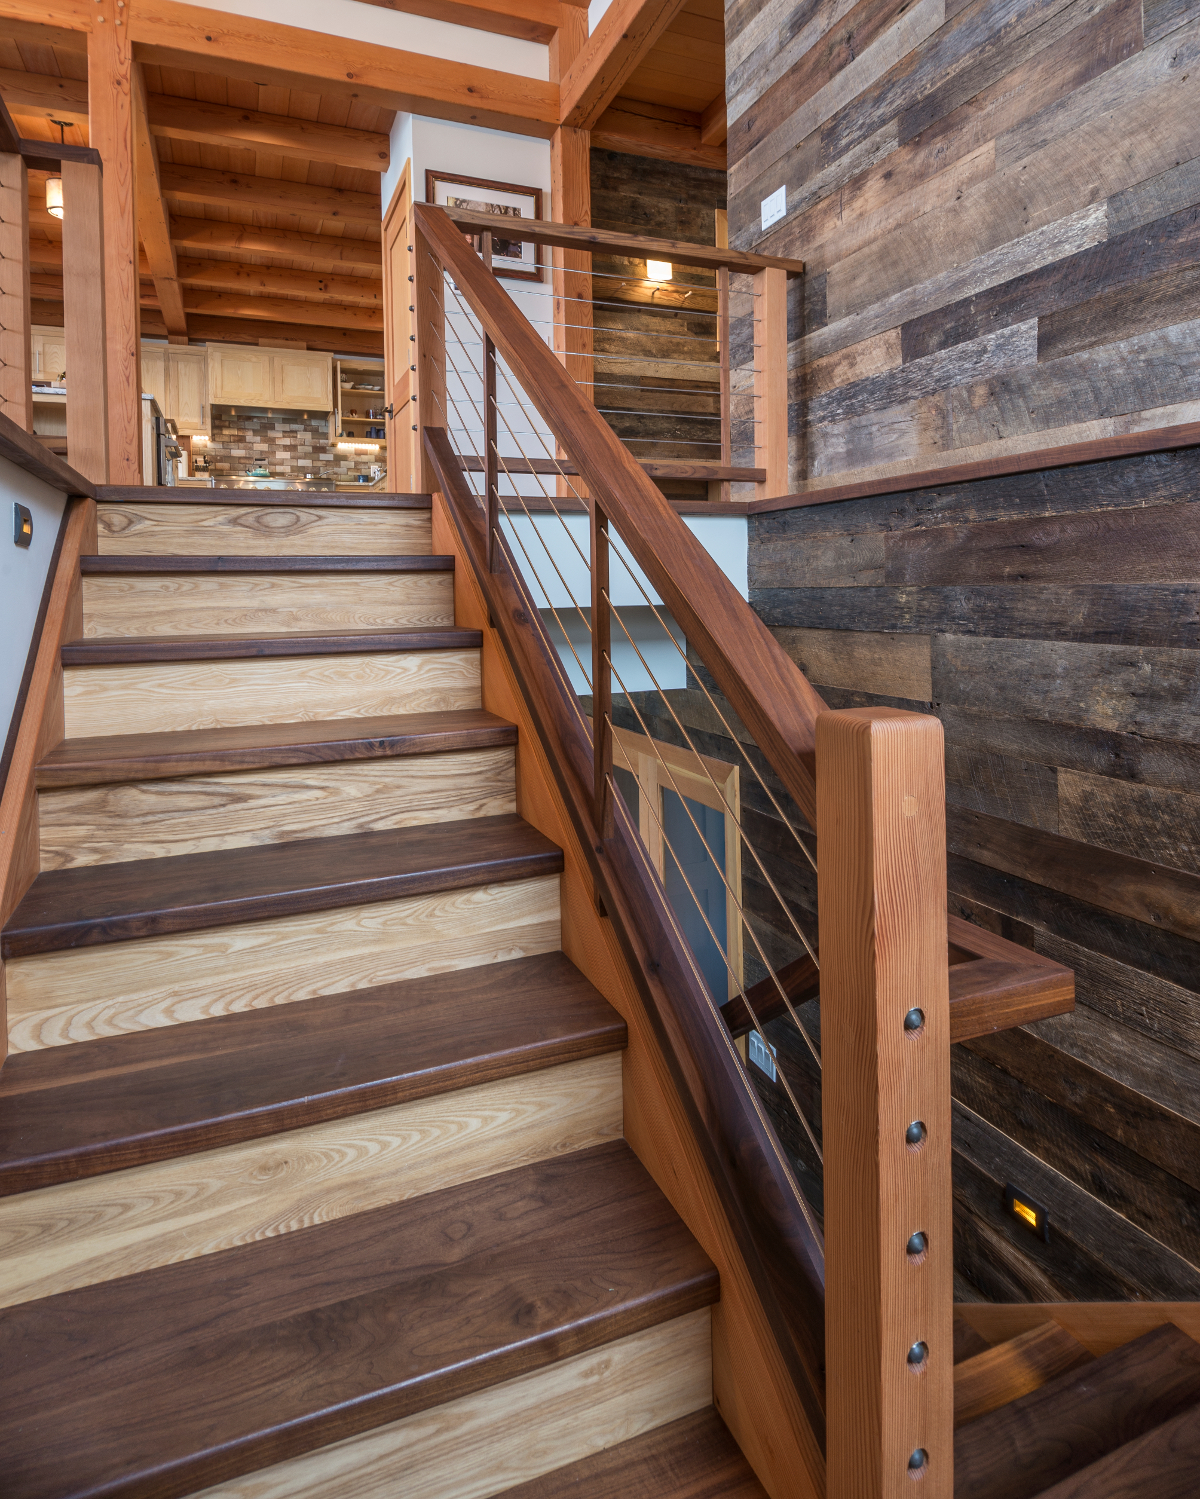 Woods used throughout this Hudson Valley home coalesce in the main stair where the railing/cables mimic the railing found on the outdoor deck (image below). Photo by Scott Hemenway.